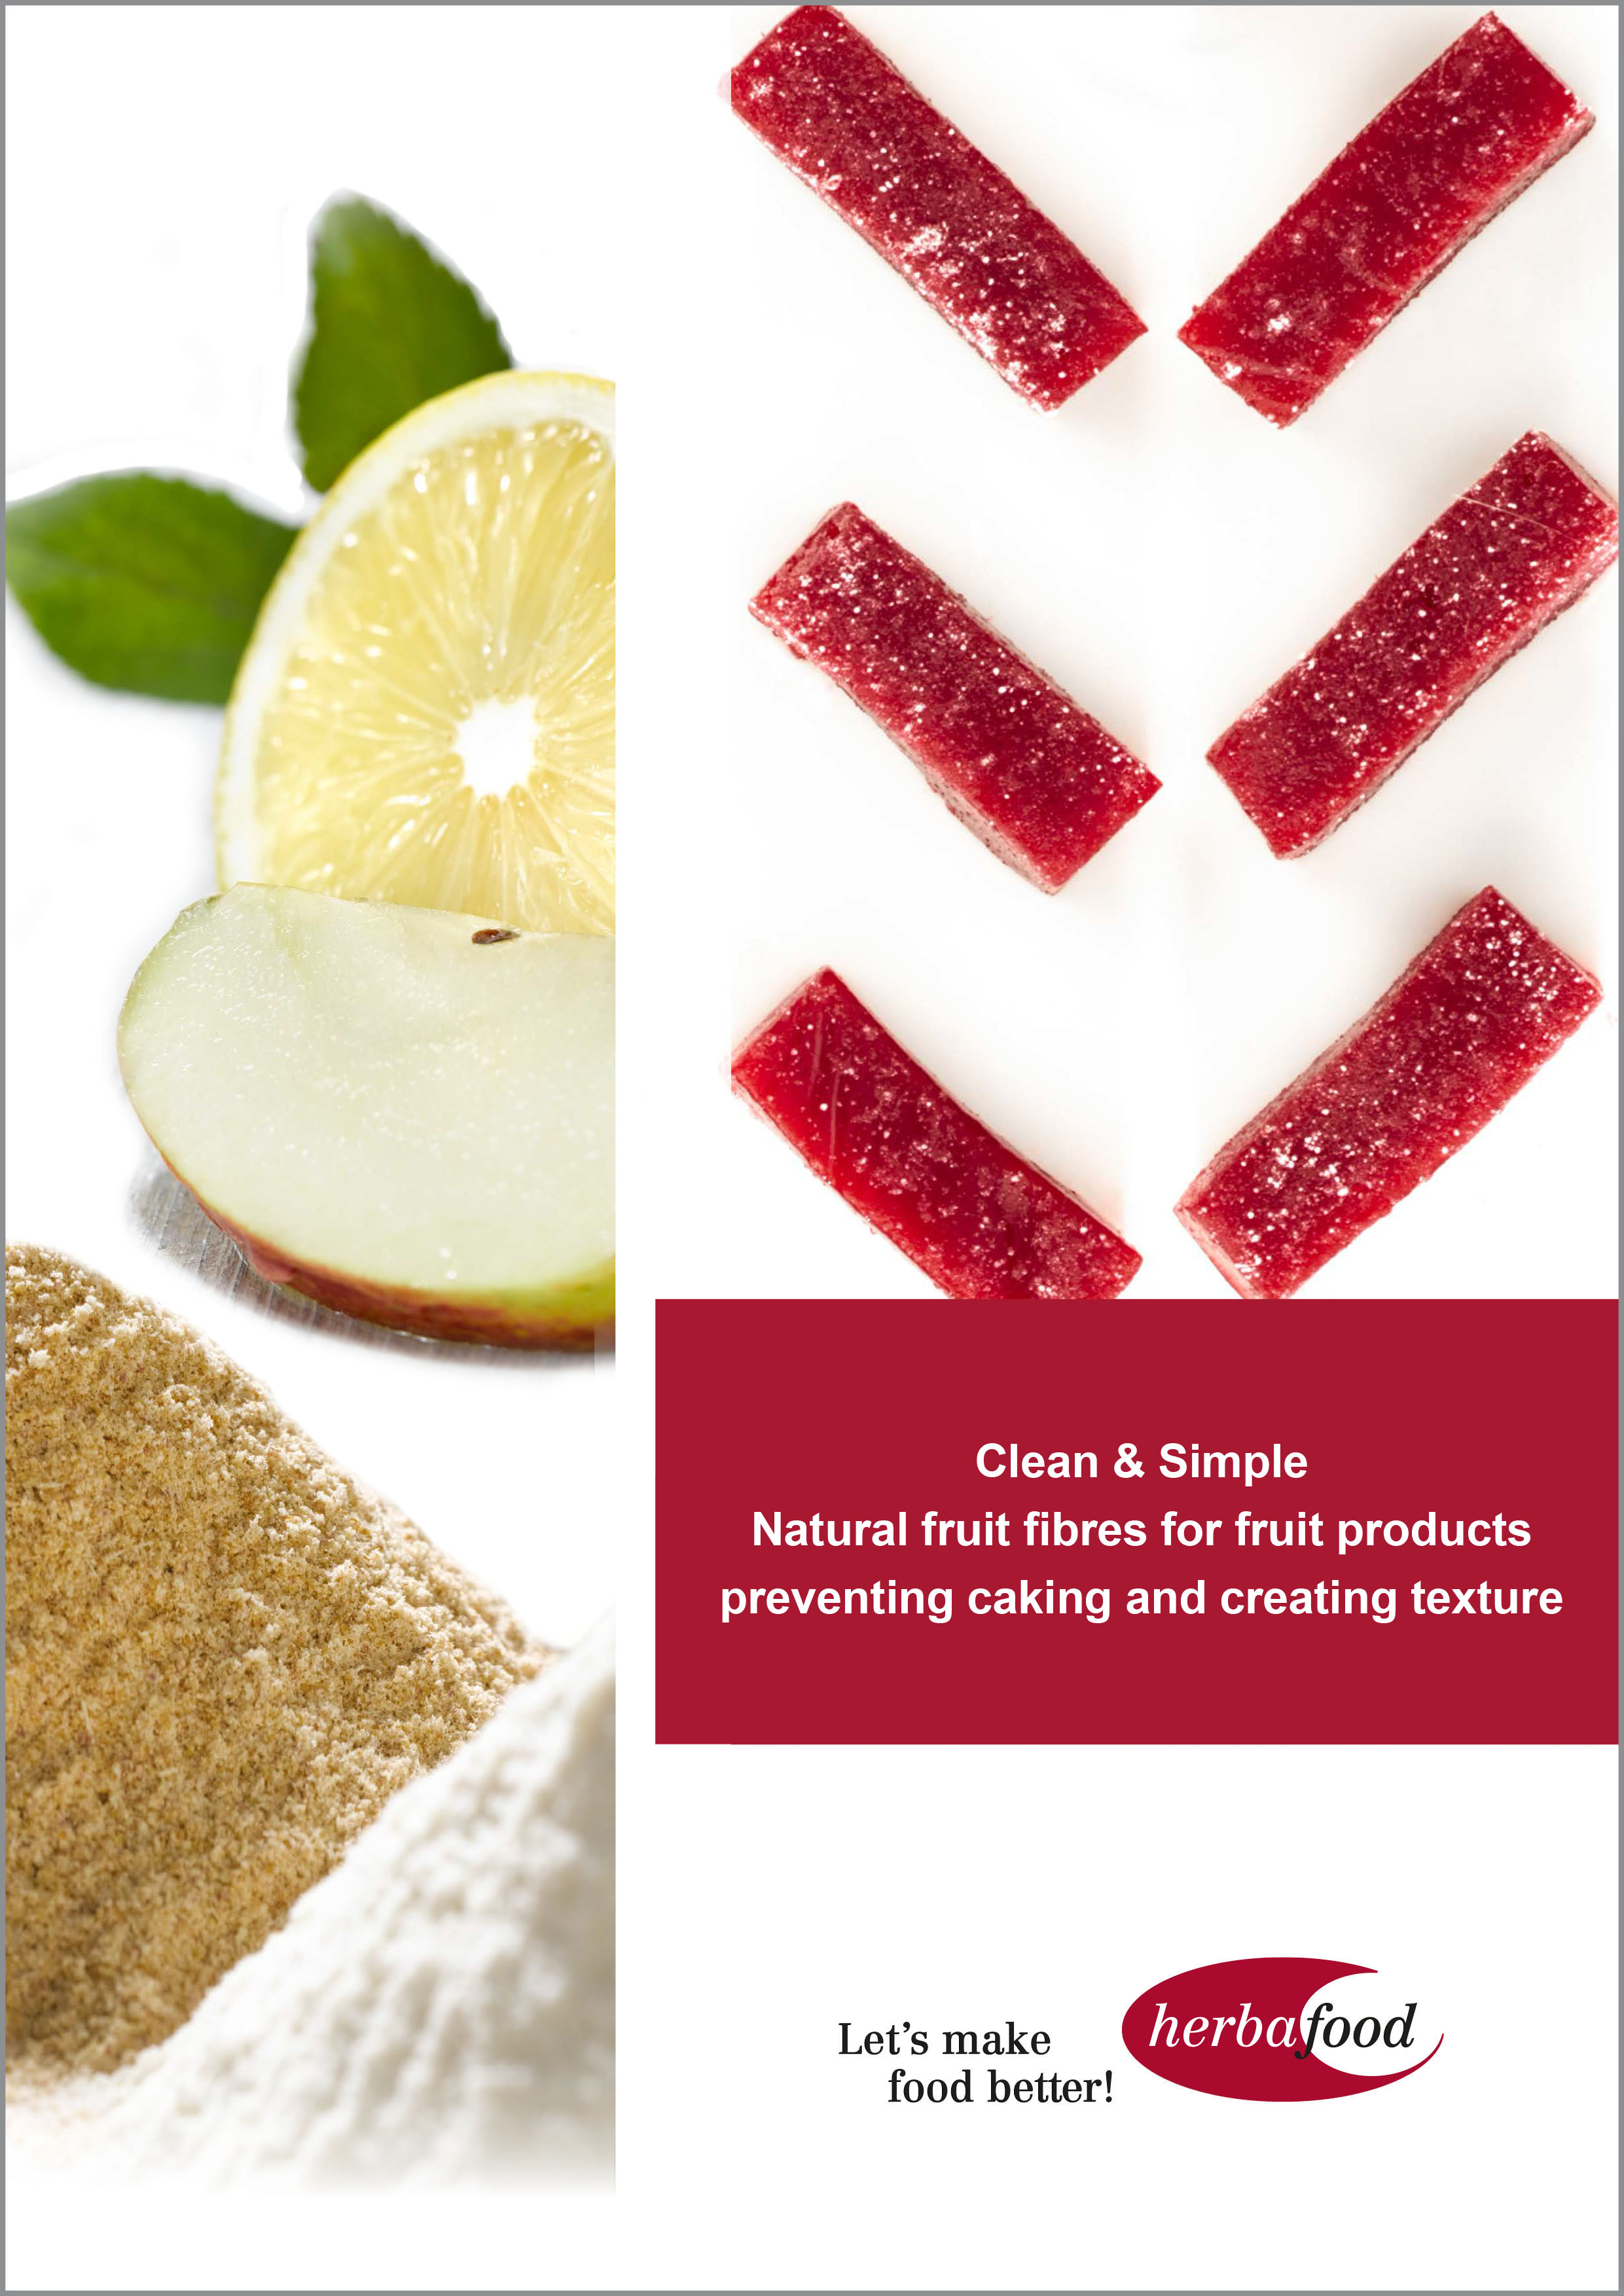 Clean & Simple – Natural fruit fibres for fruit products: Preventing caking and creating texture (Format: PDF – Size: 700 KB)